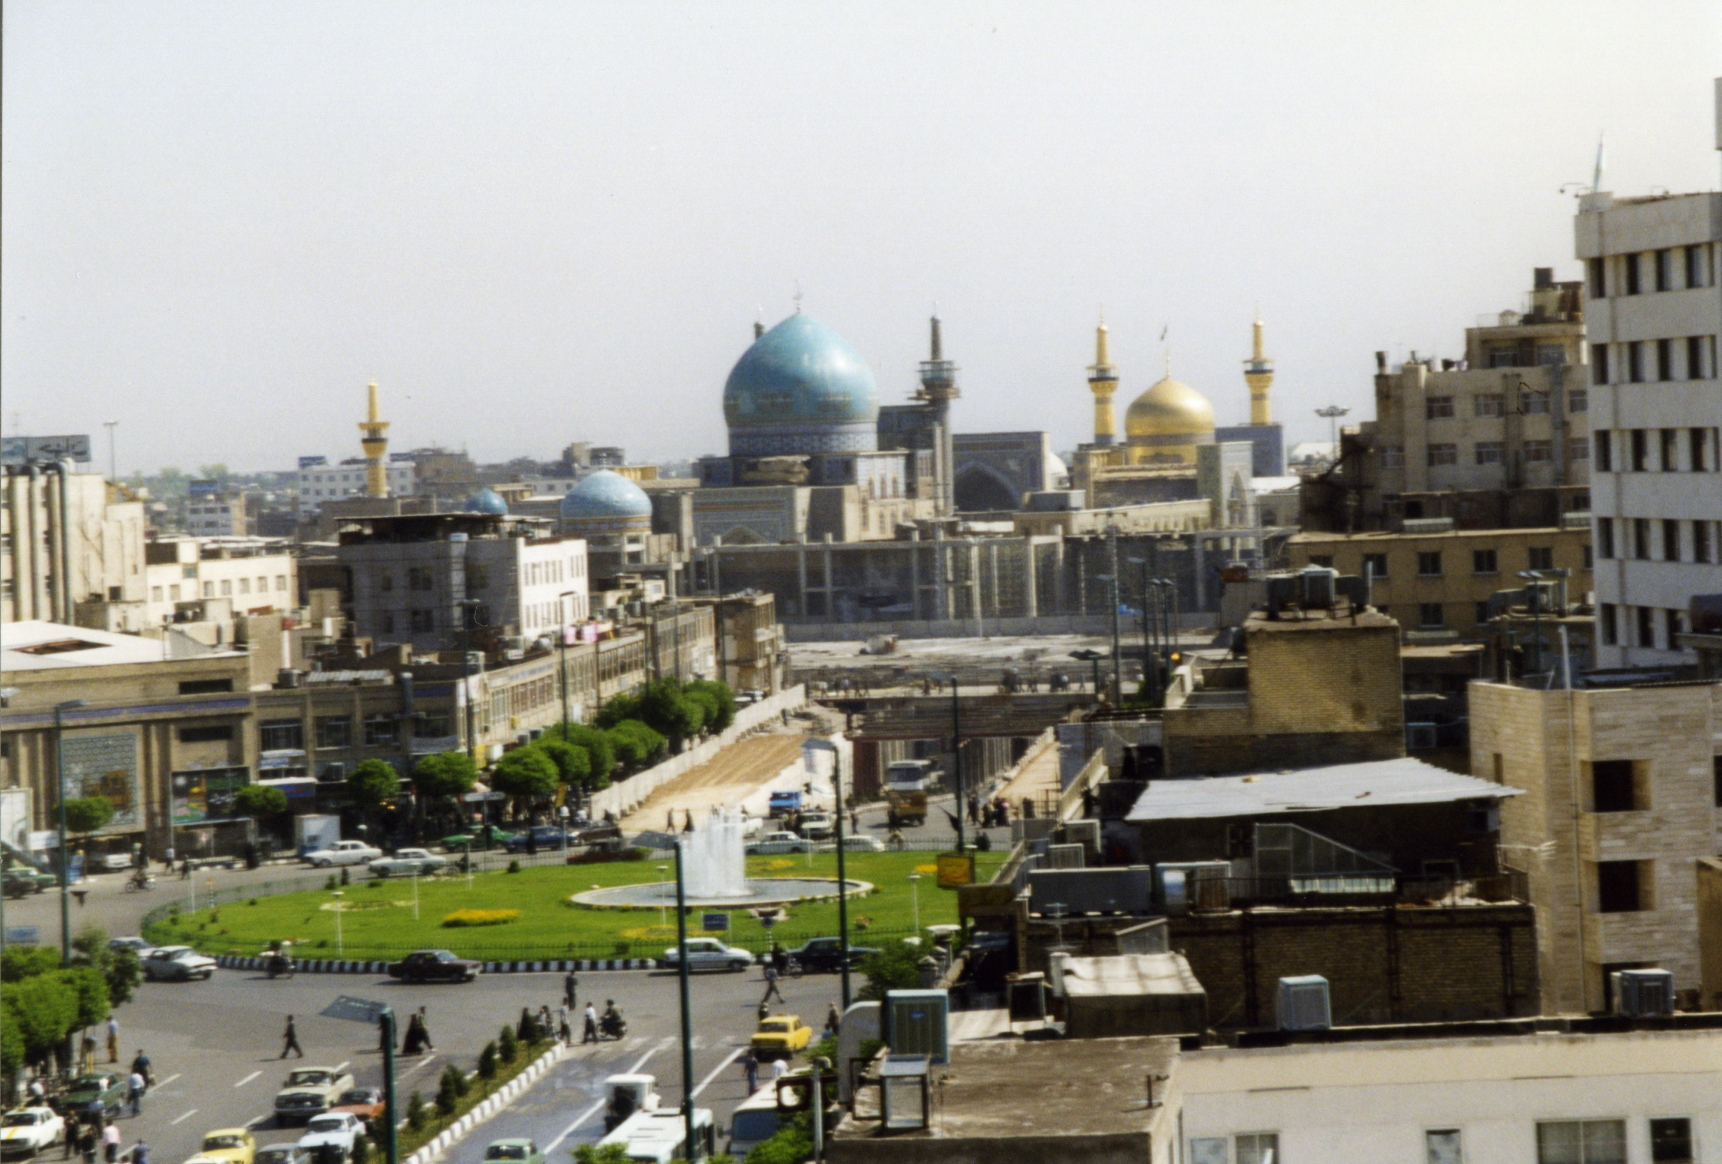 dating in mashhad iran The imam reza shrine in mashhad, iran is a complex which contains the adjacent to the burial chamber is also a mosque dating back to the 10th.